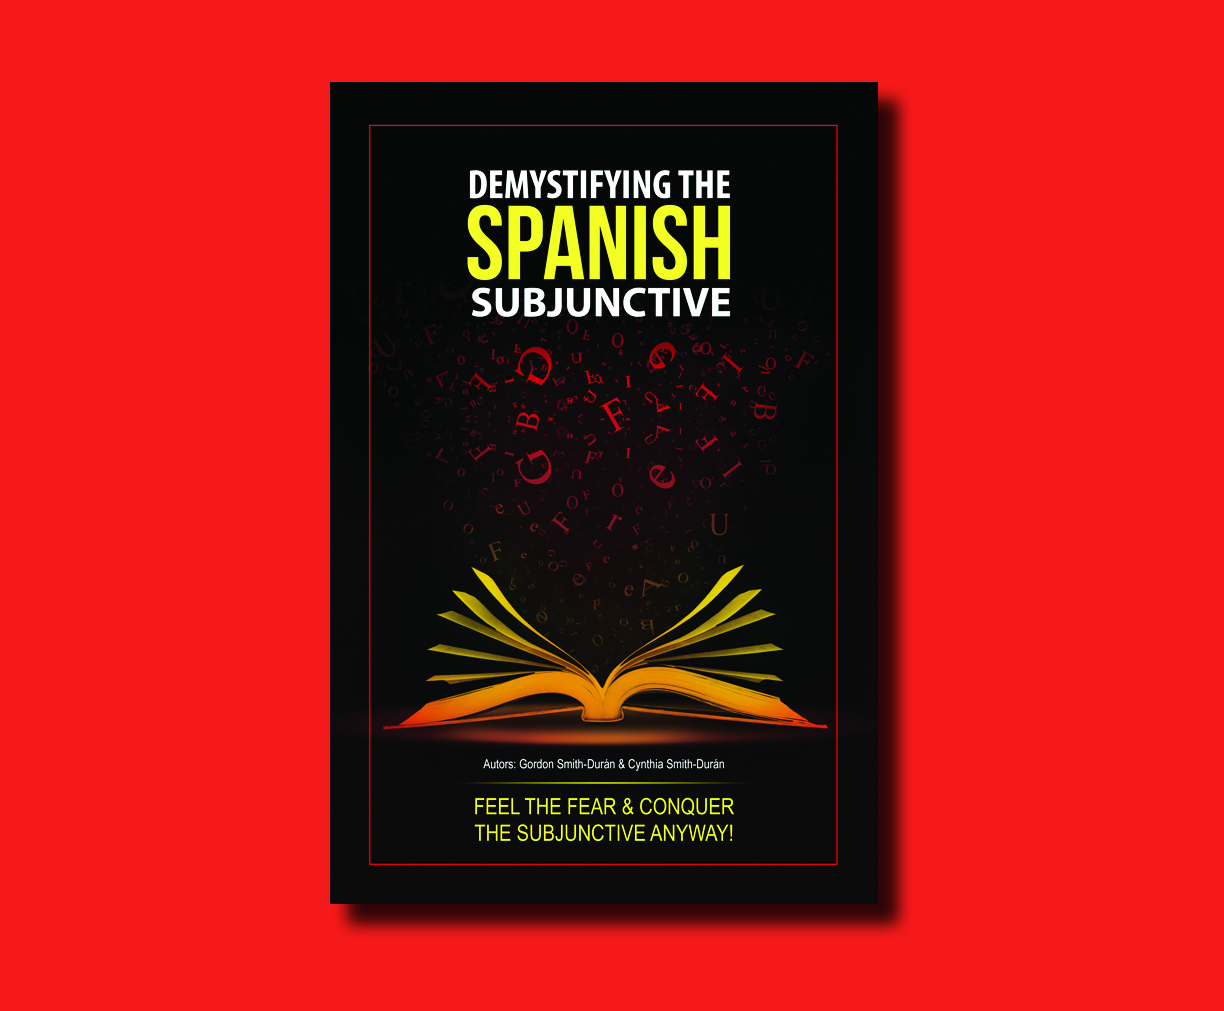 Design book covers online - Book Cover Design By Uk For Online Spanish Language Company Requires A Book Cover Design